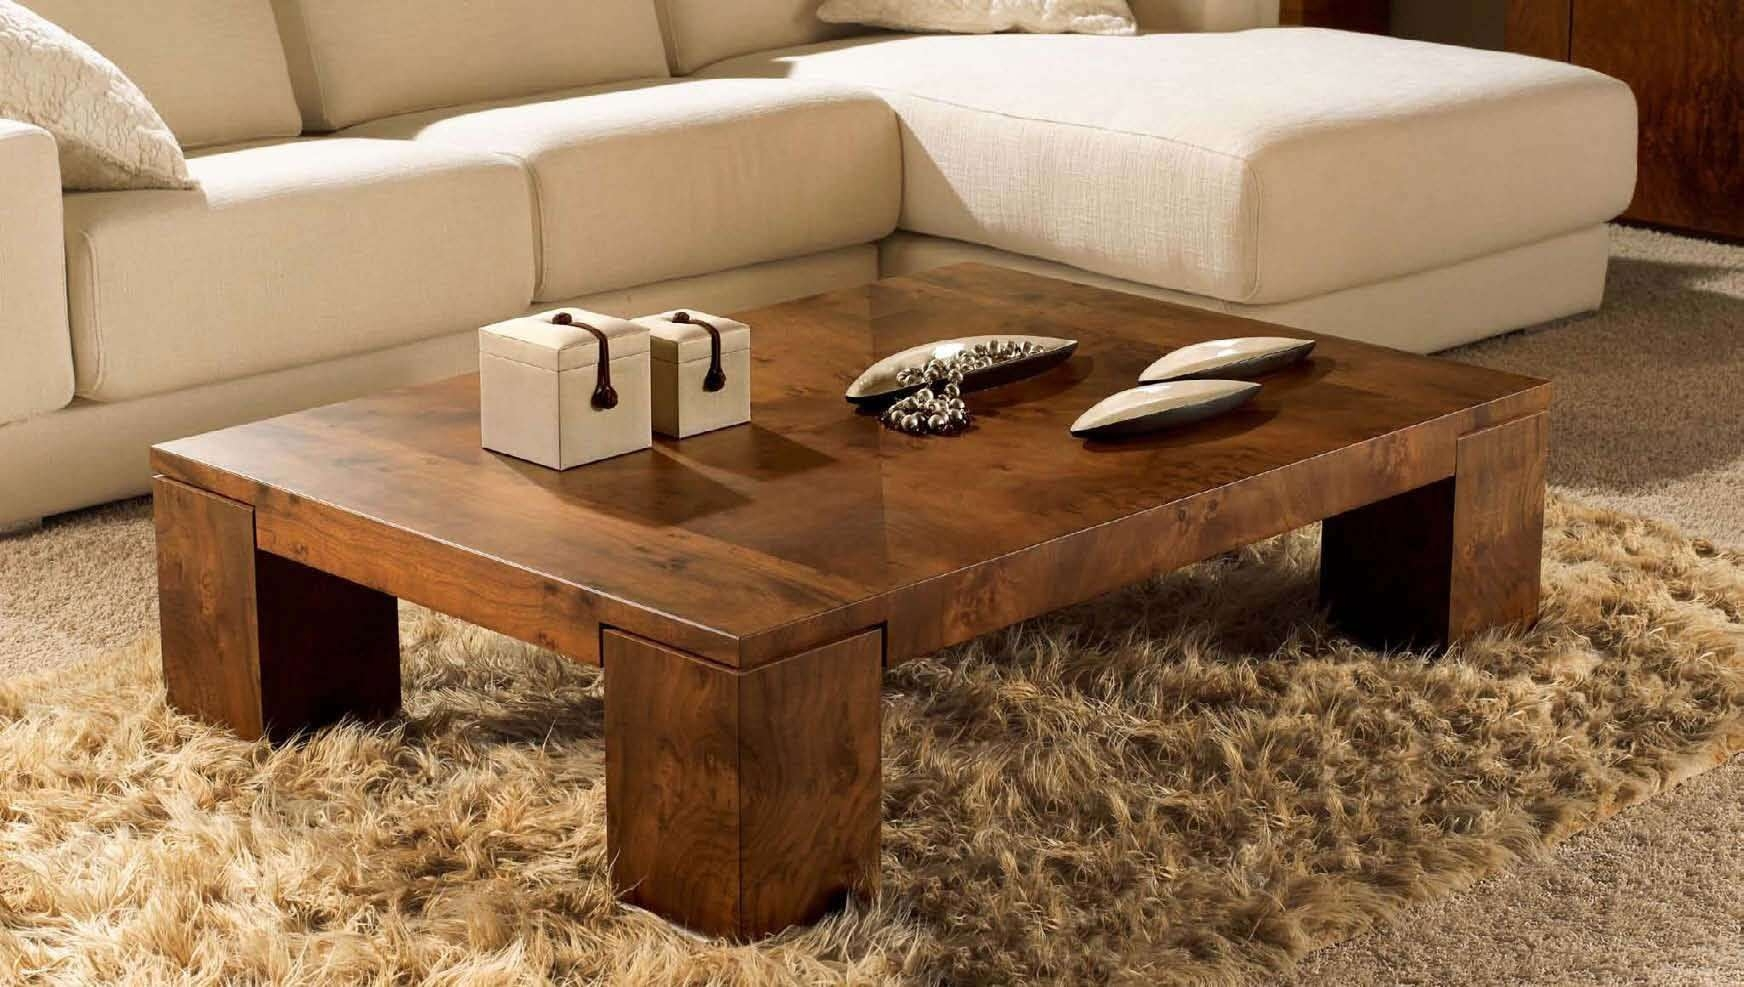 Fashionable Big Coffee Tables Throughout Big Floor Flower Vase Idea Big Vase Decor Set Coffee Tables For (View 14 of 20)